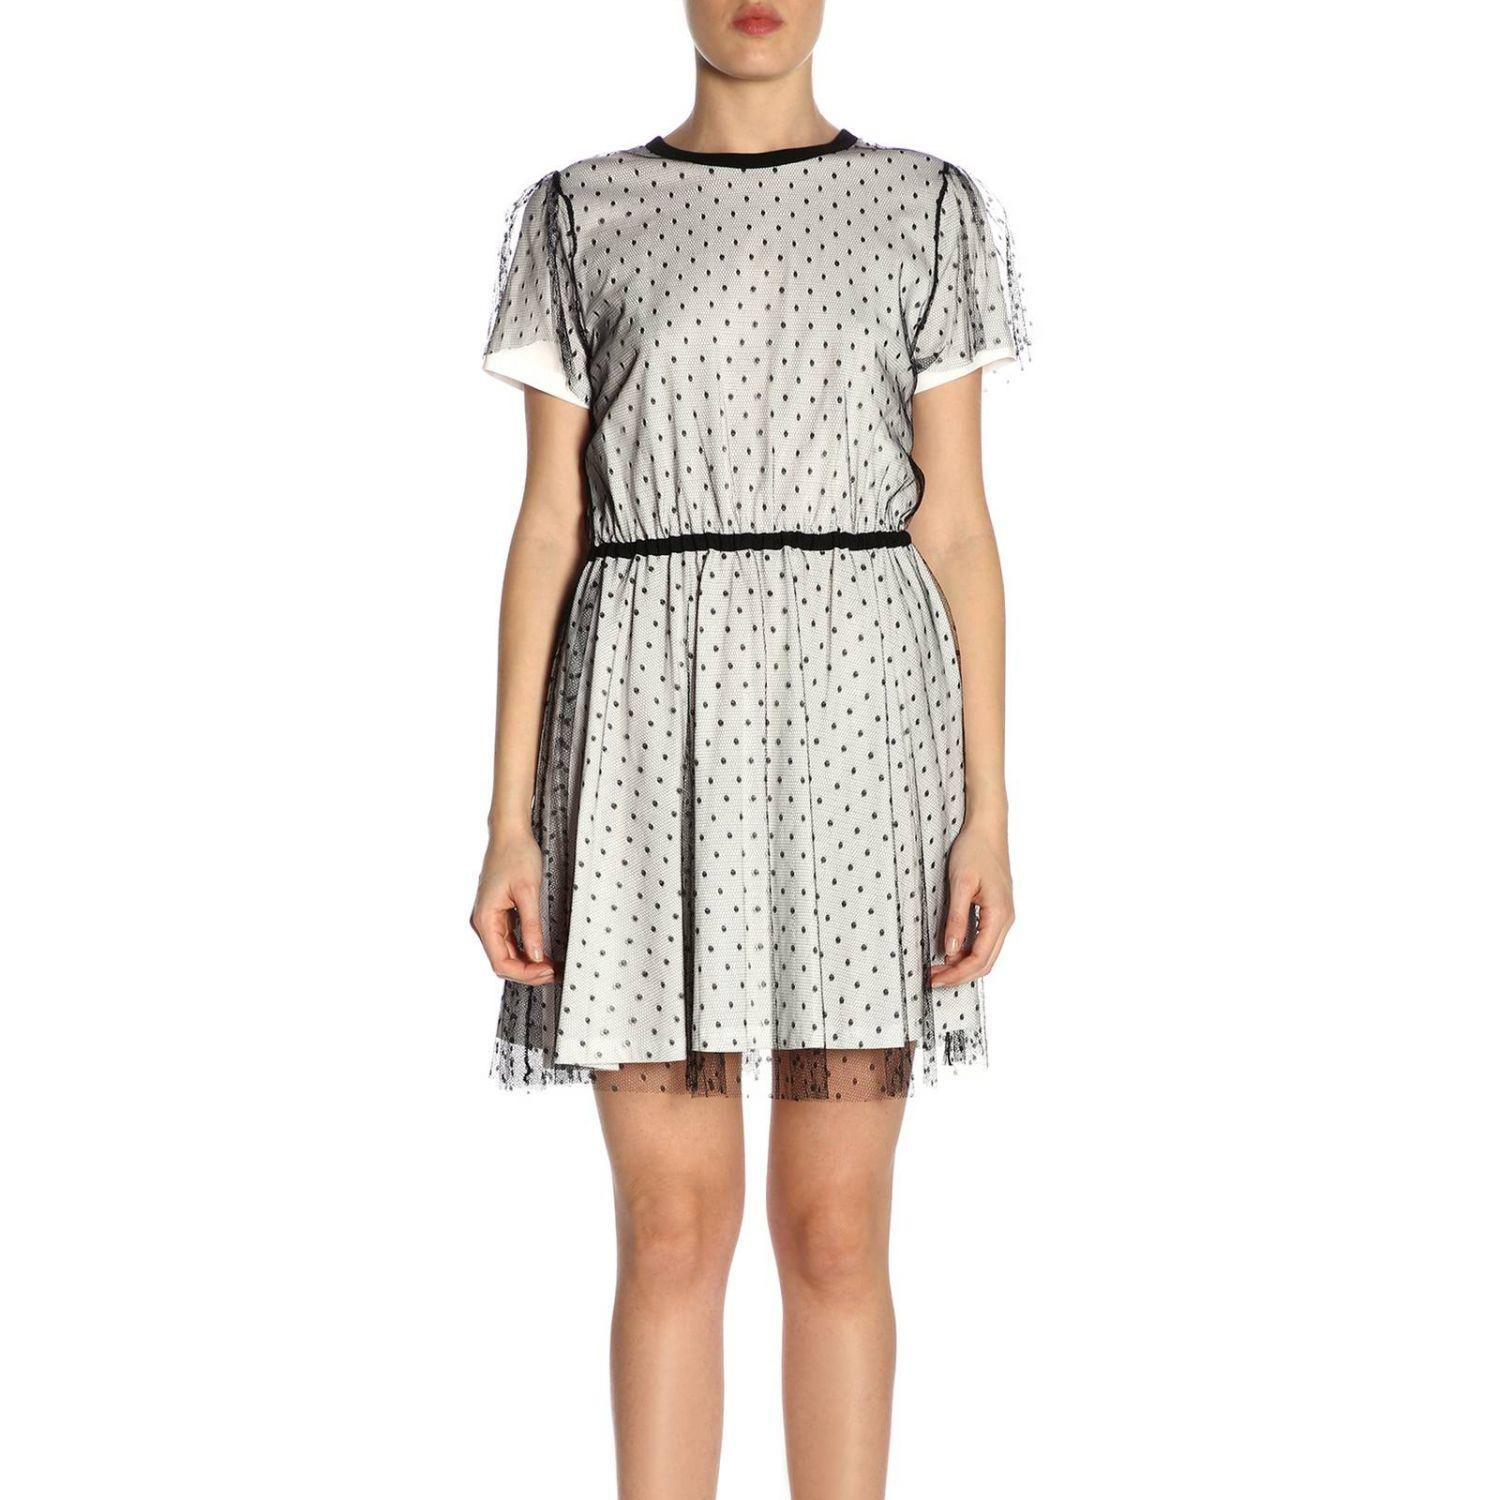 d94fe5bb04 Lyst - RED Valentino Dress Women in White